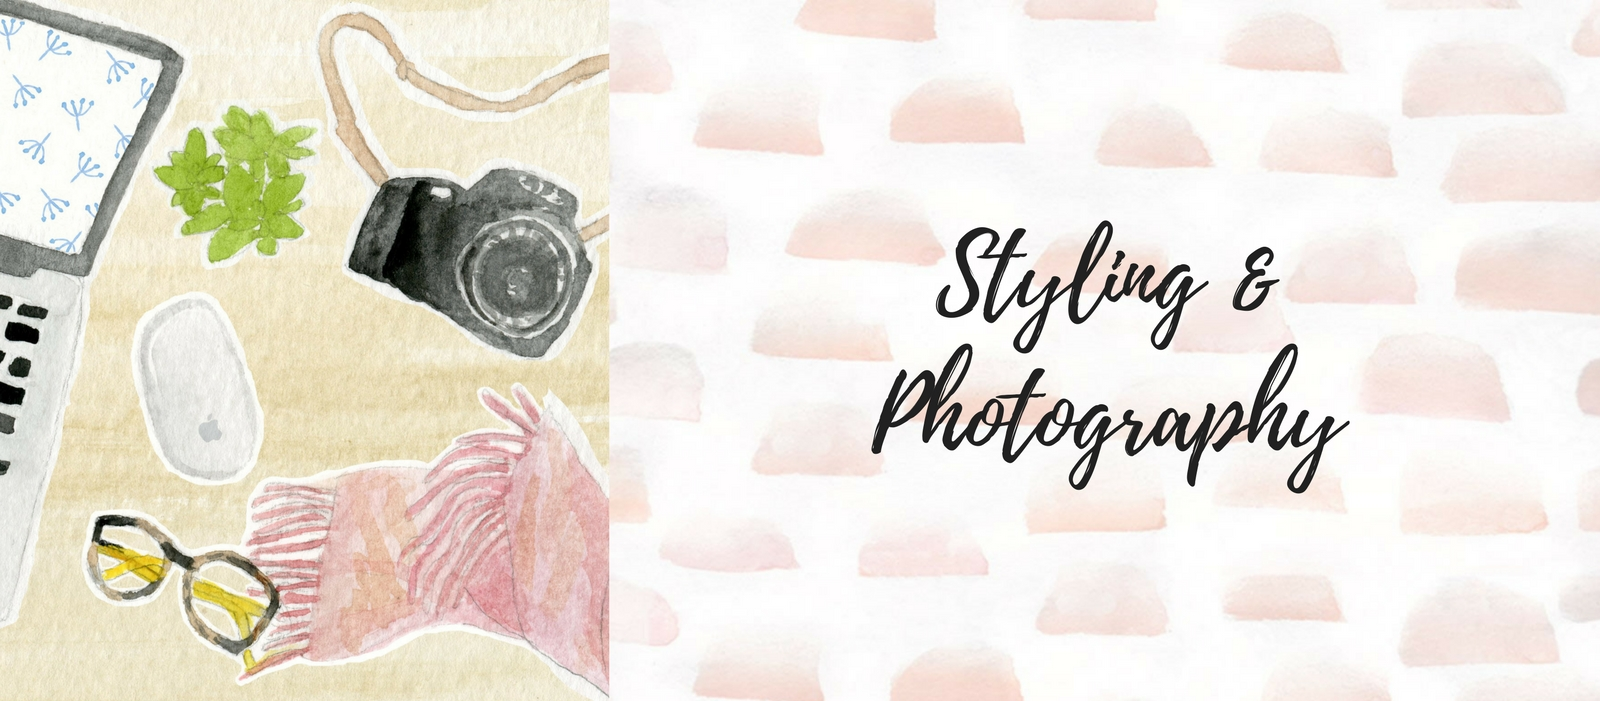 Styling and Photography for Small Business